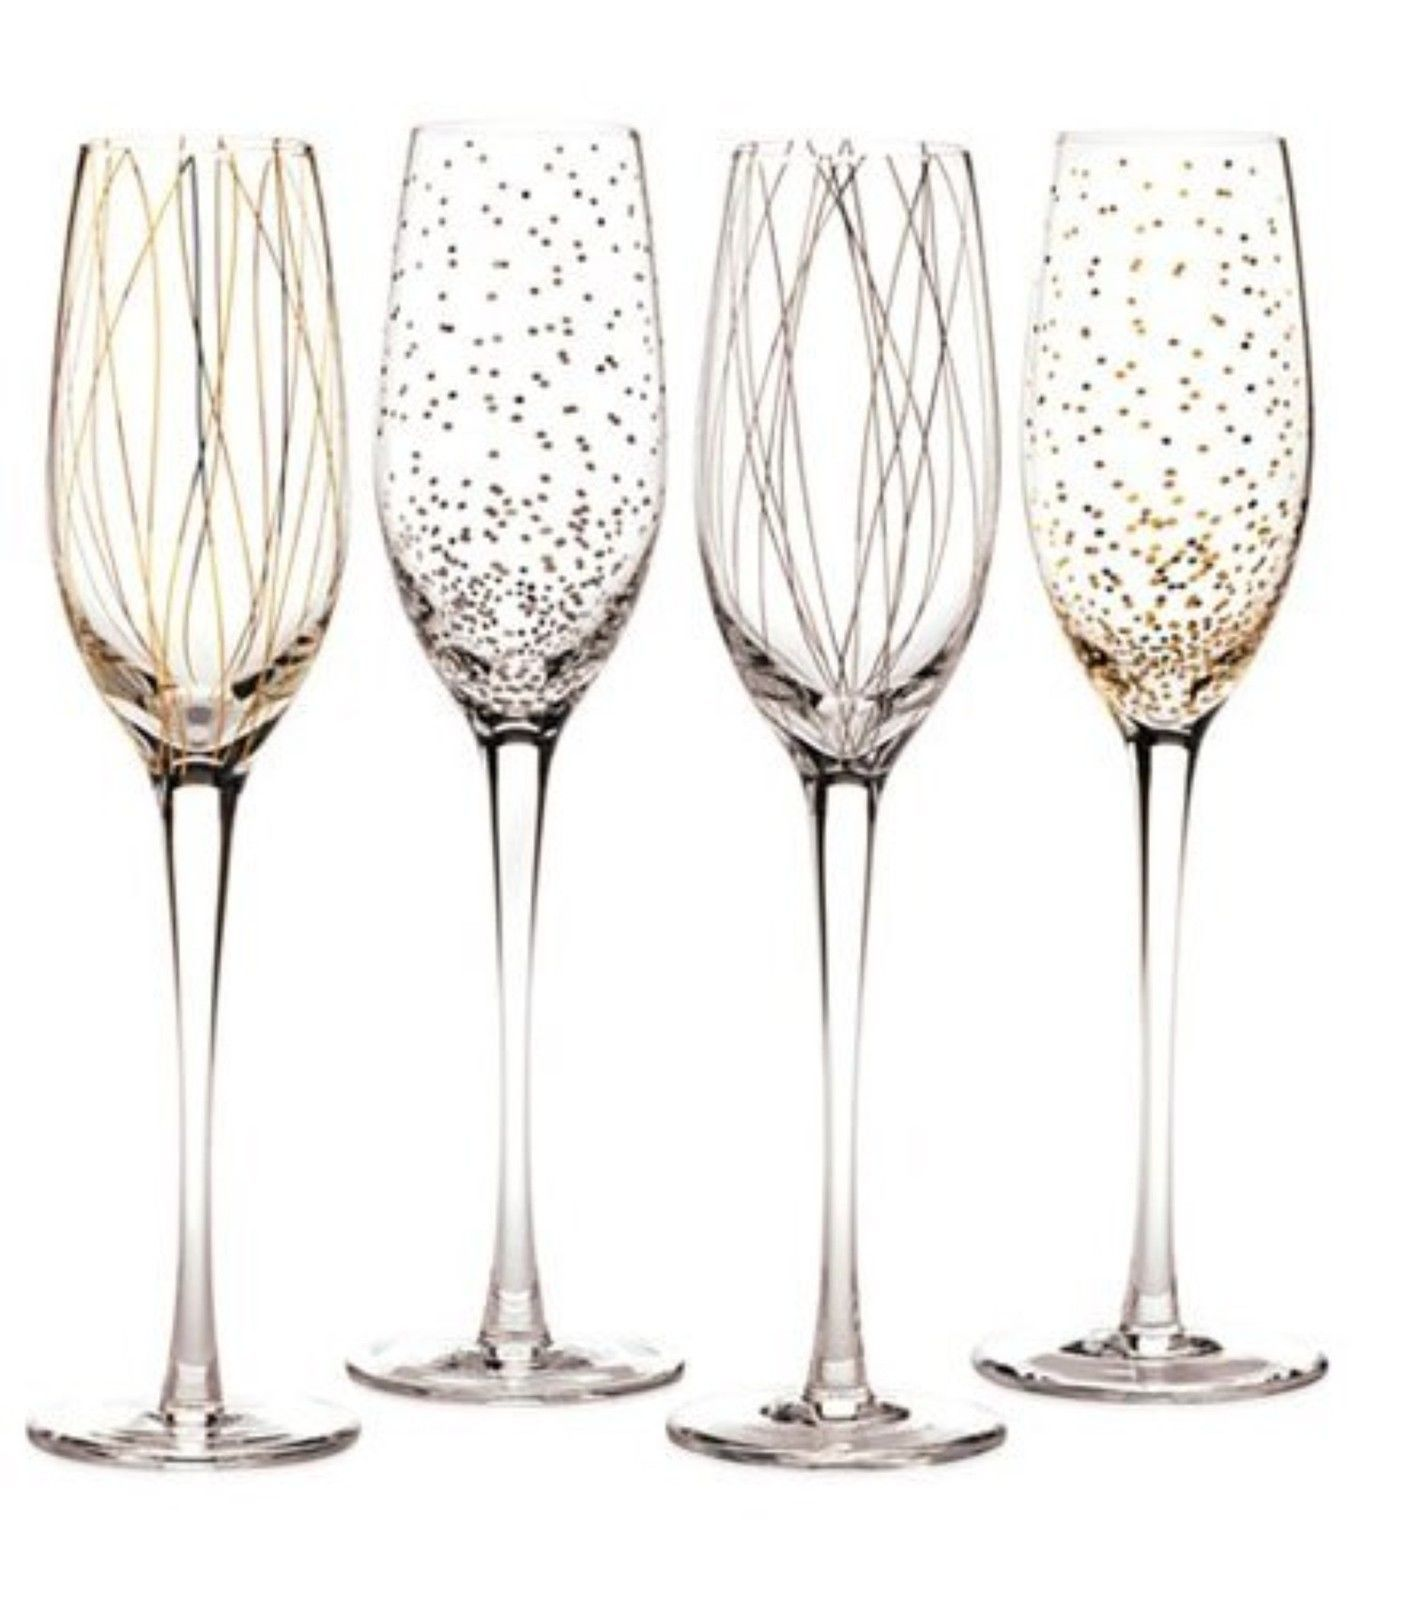 Beautiful Mikasa Wine Glasses for Stemware or Serveware: Nice Pattern On The Mikasa Wine Glasses